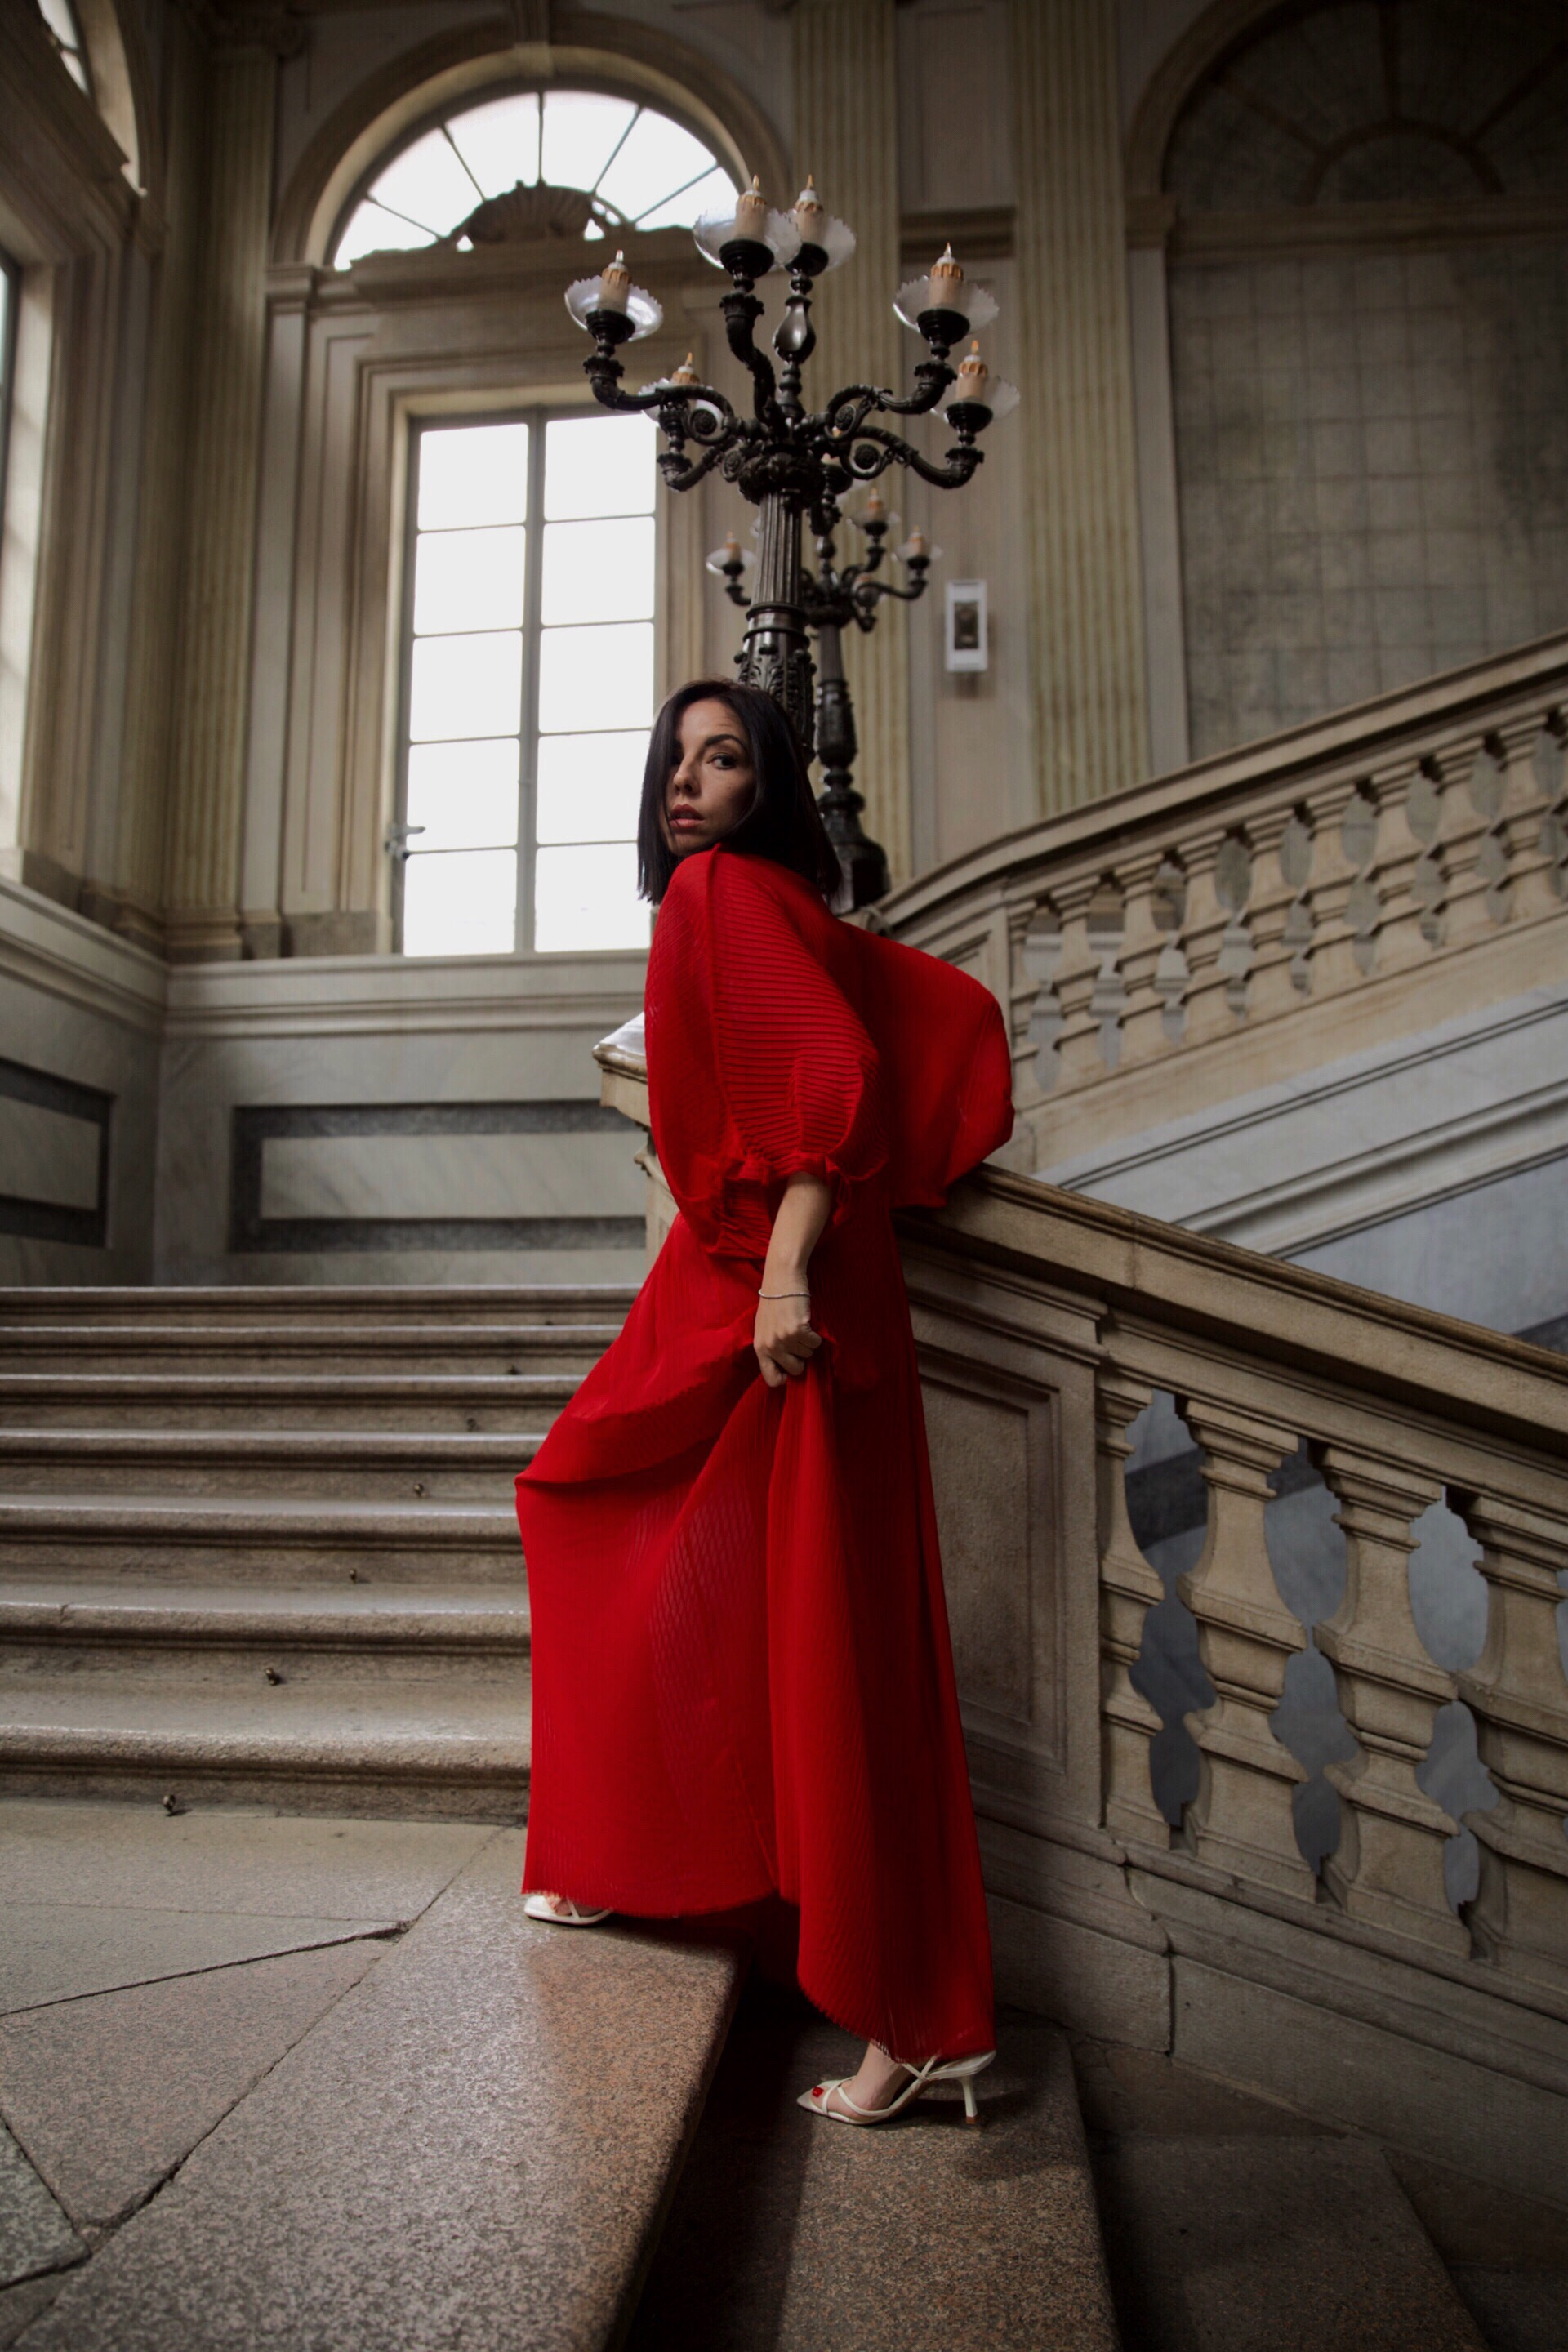 come abbinare abito rosso, elisa bellino, fashion blogger italiane 2019, fashion blogger milano, fashion blogger outfit 2019, slip dress outfit, magali pascal dress, streetstyle milano 2019, come vestirsi aperitivo milano 2019